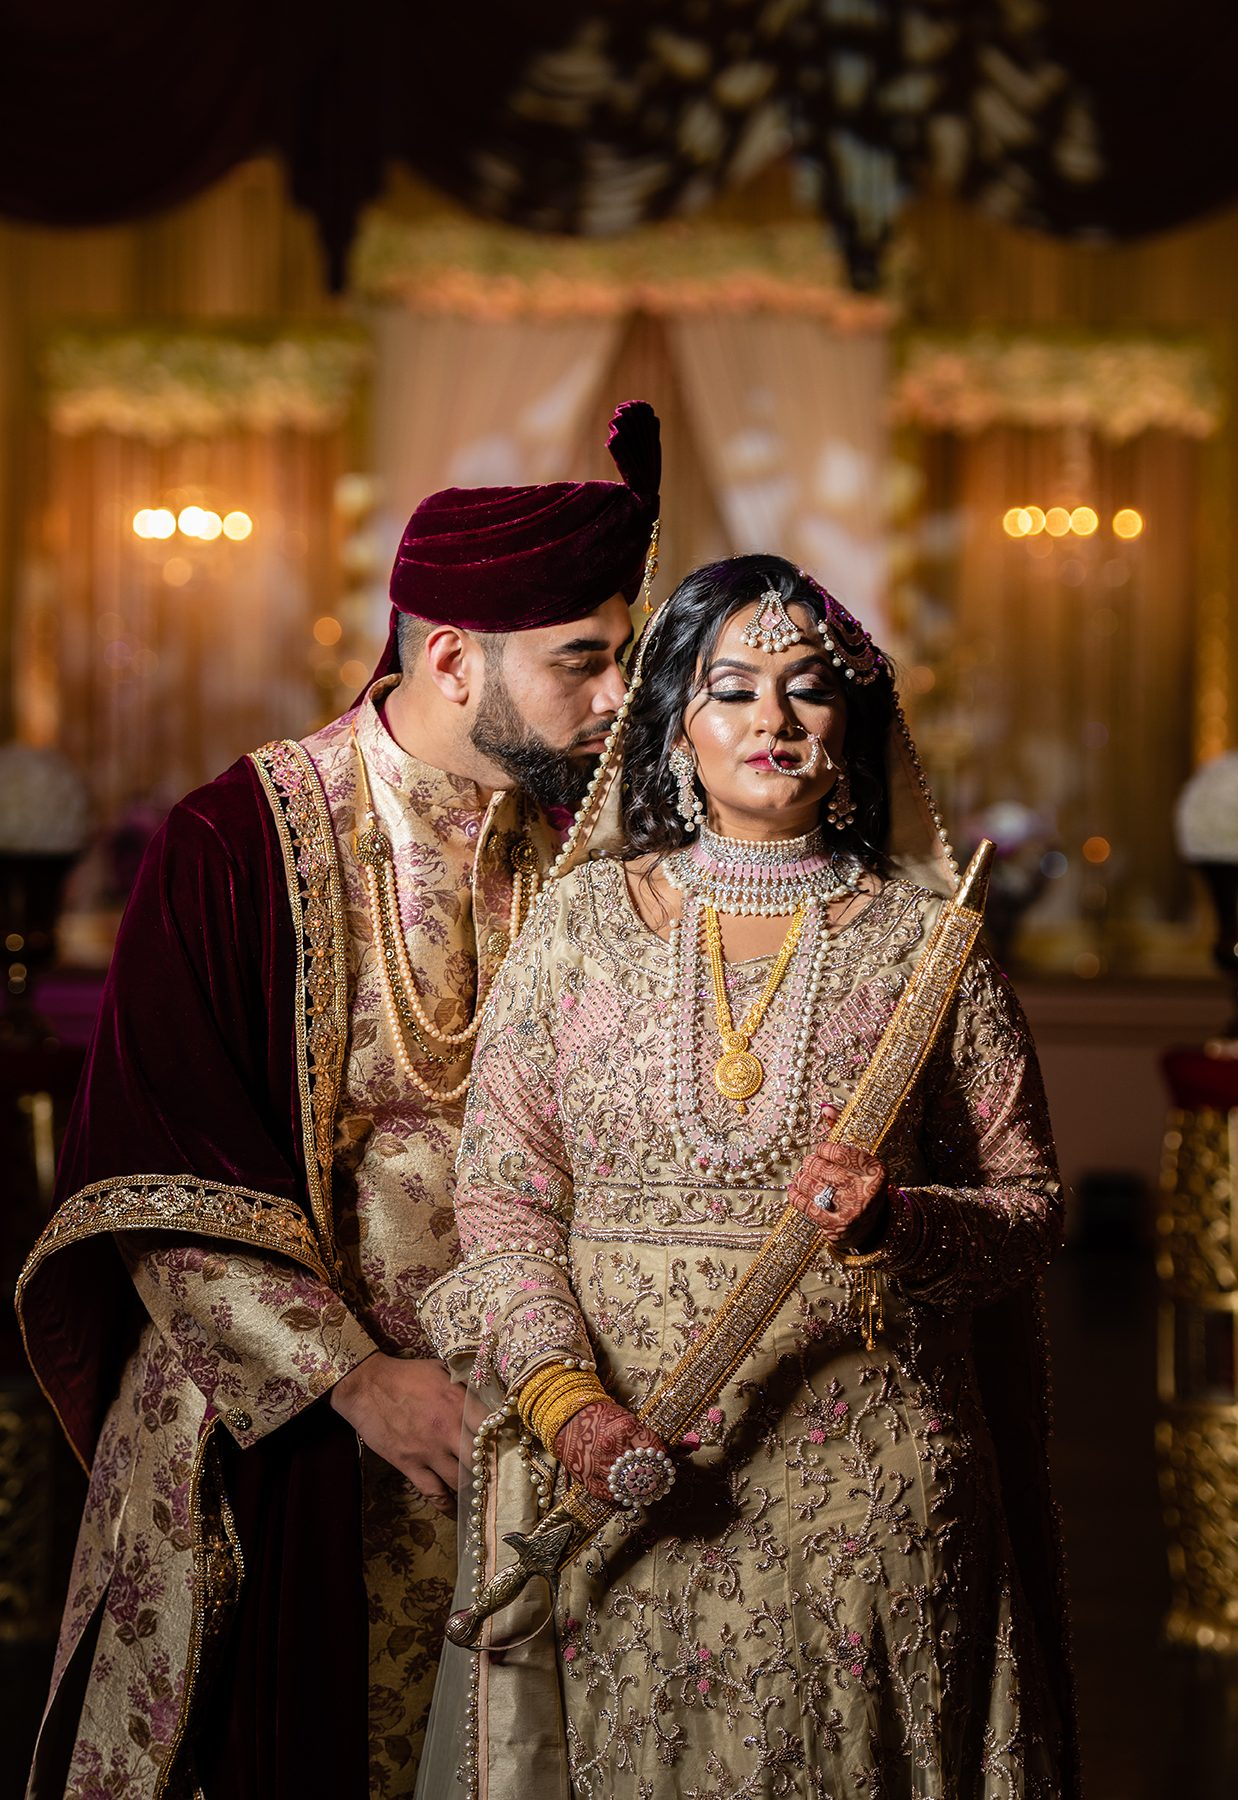 south_asian_wedding_photography_dhoom_studio_new_york65-1238x1800 SOUTH ASIAN WEDDINGS